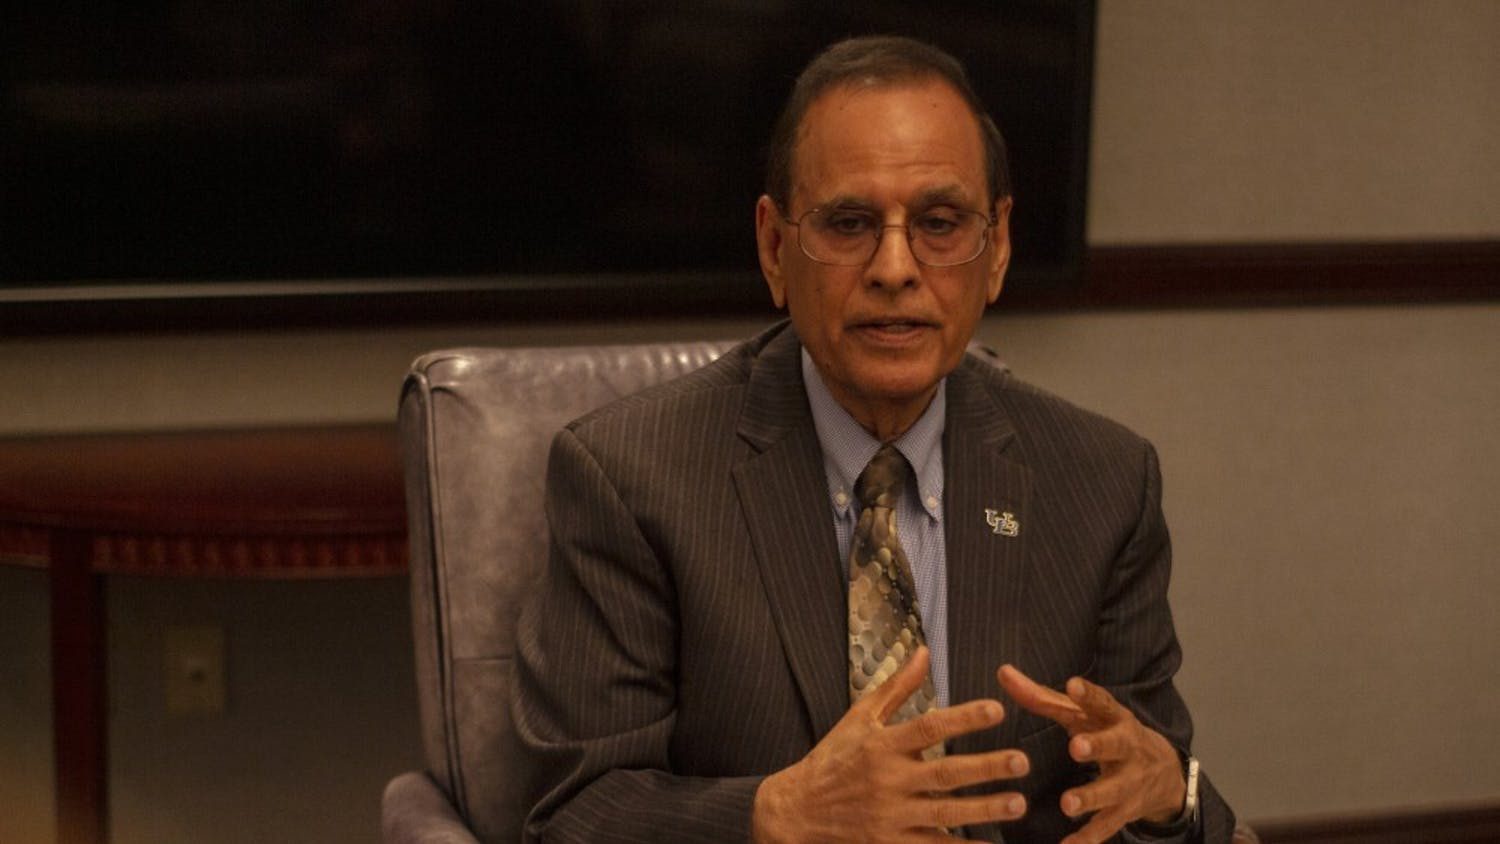 The Spectrum sat down with UB President Satish Tripathi on Monday to discuss fall 2021 campus COVID-19 protocols, the UB Foundation and improving faculty diversity